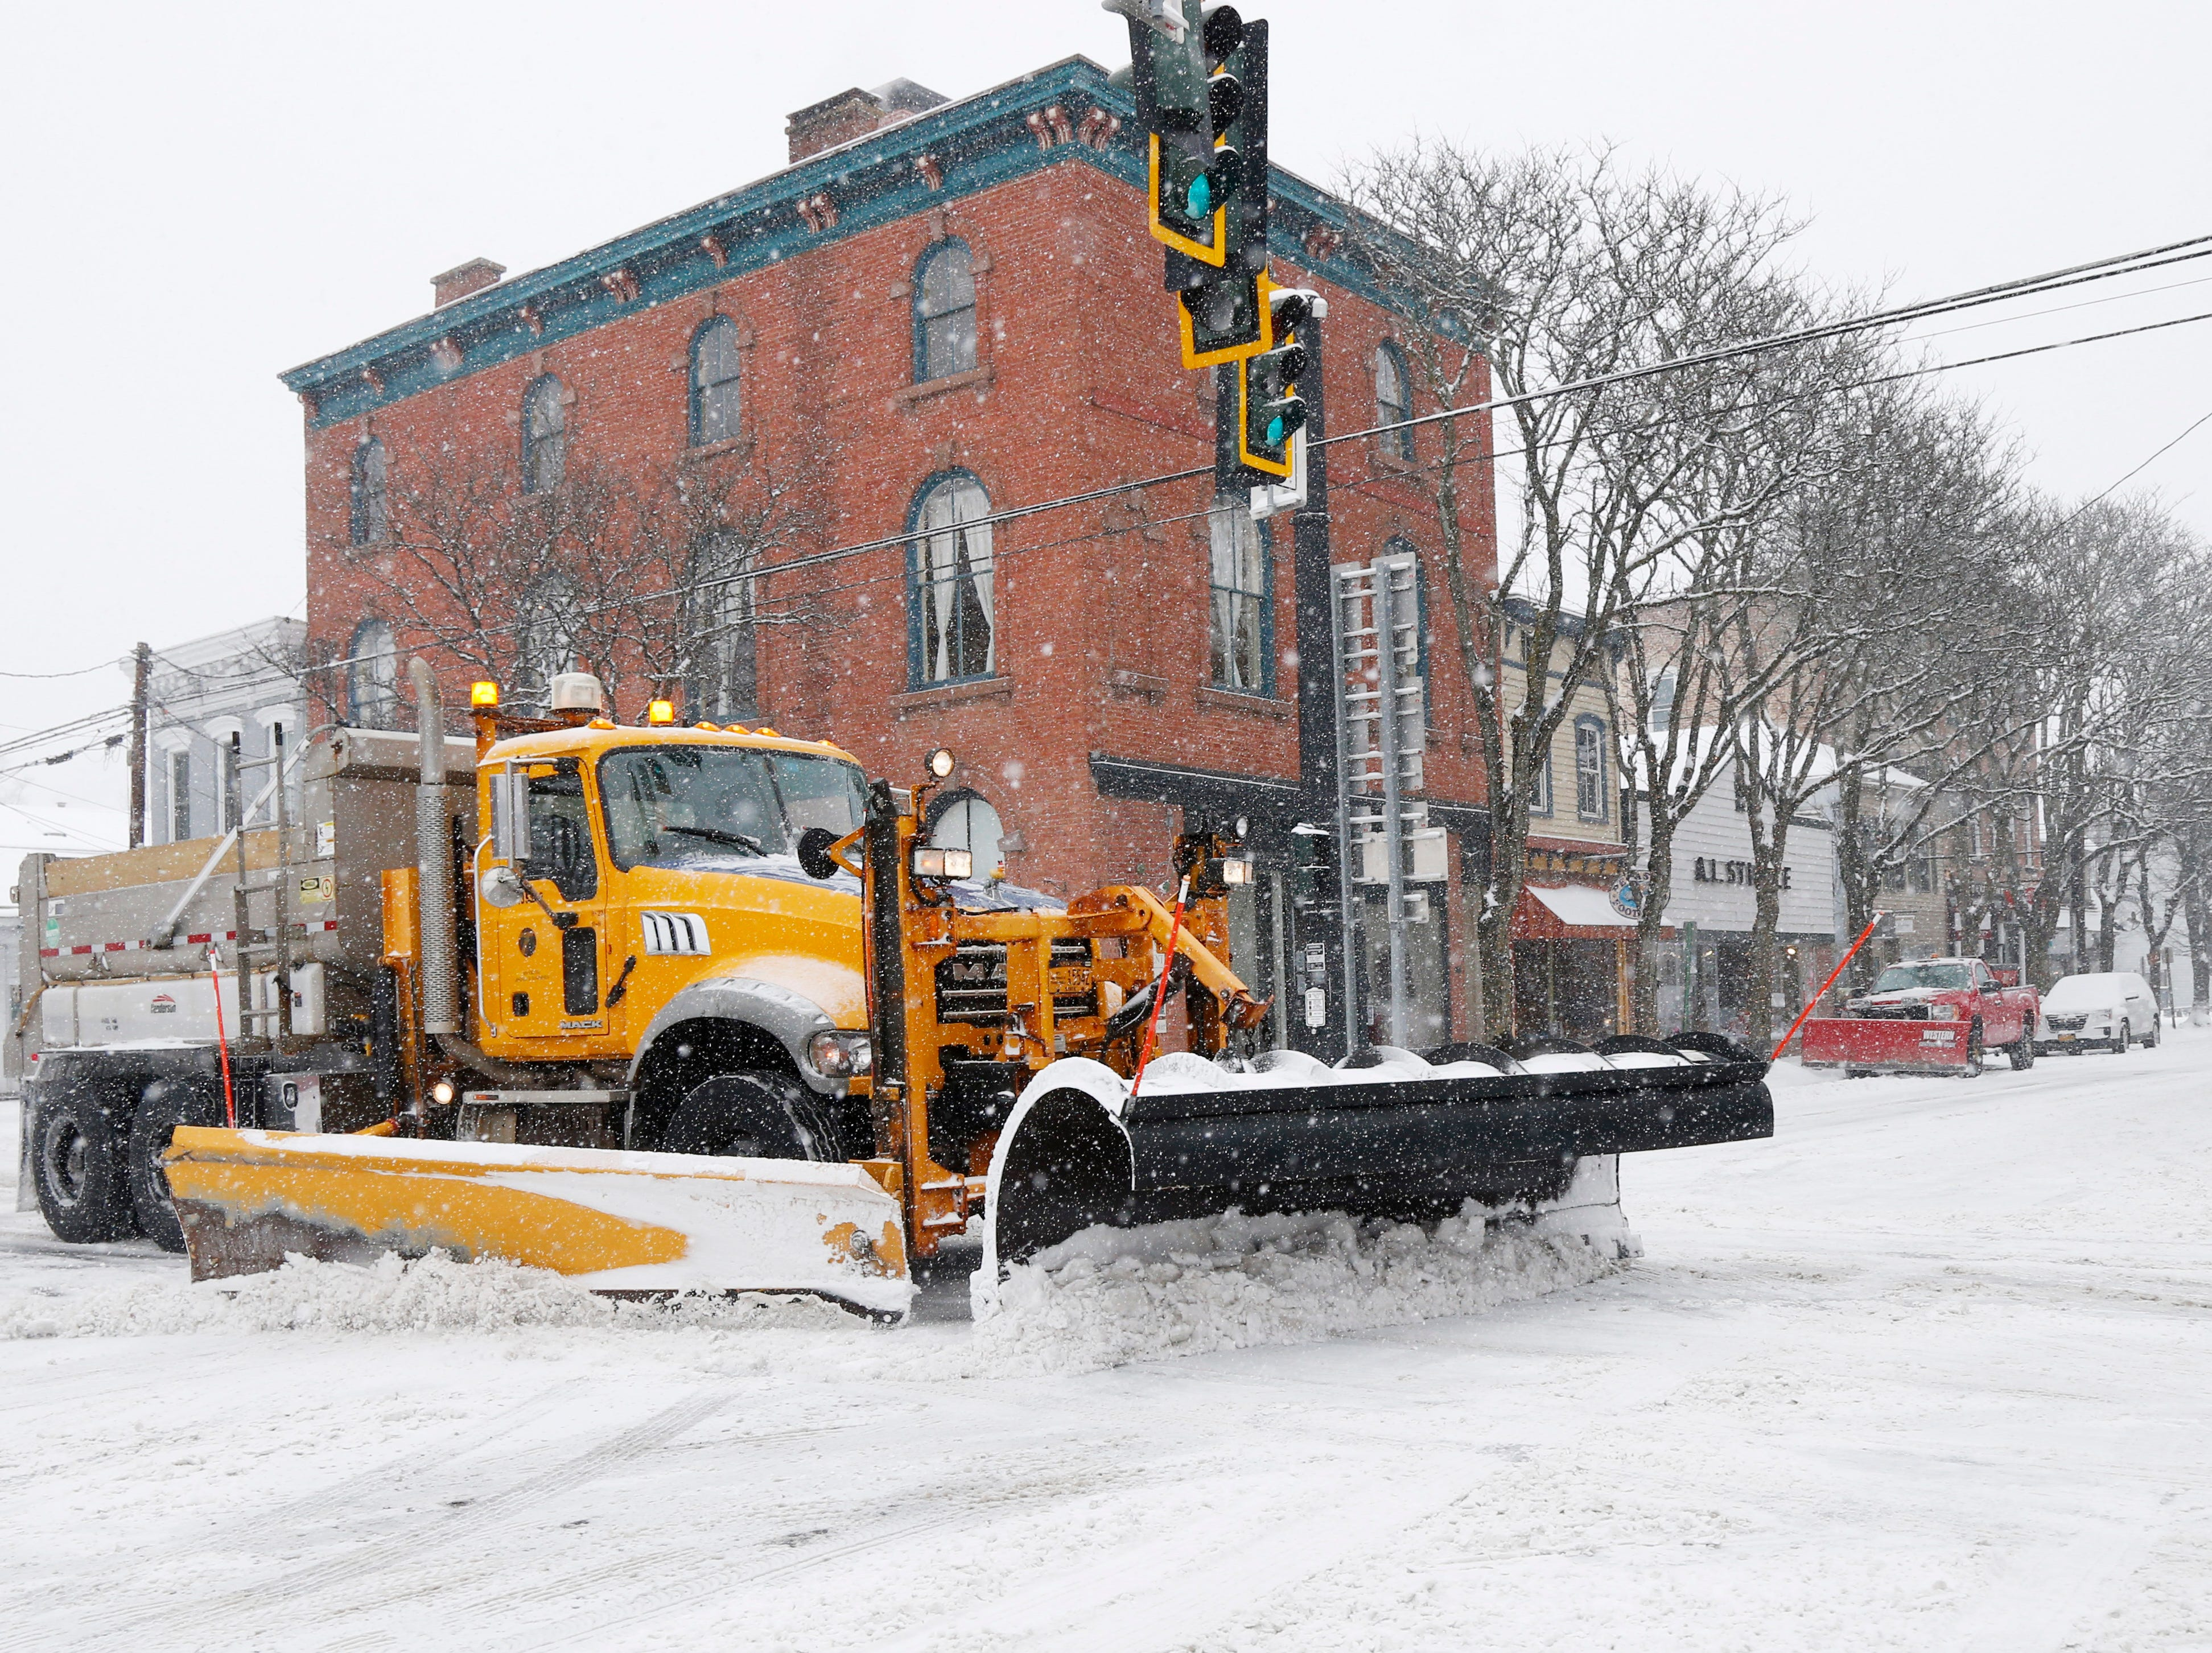 A NYSDOT clears snow on Mill Street in Rhinebeck on February 12, 2019.